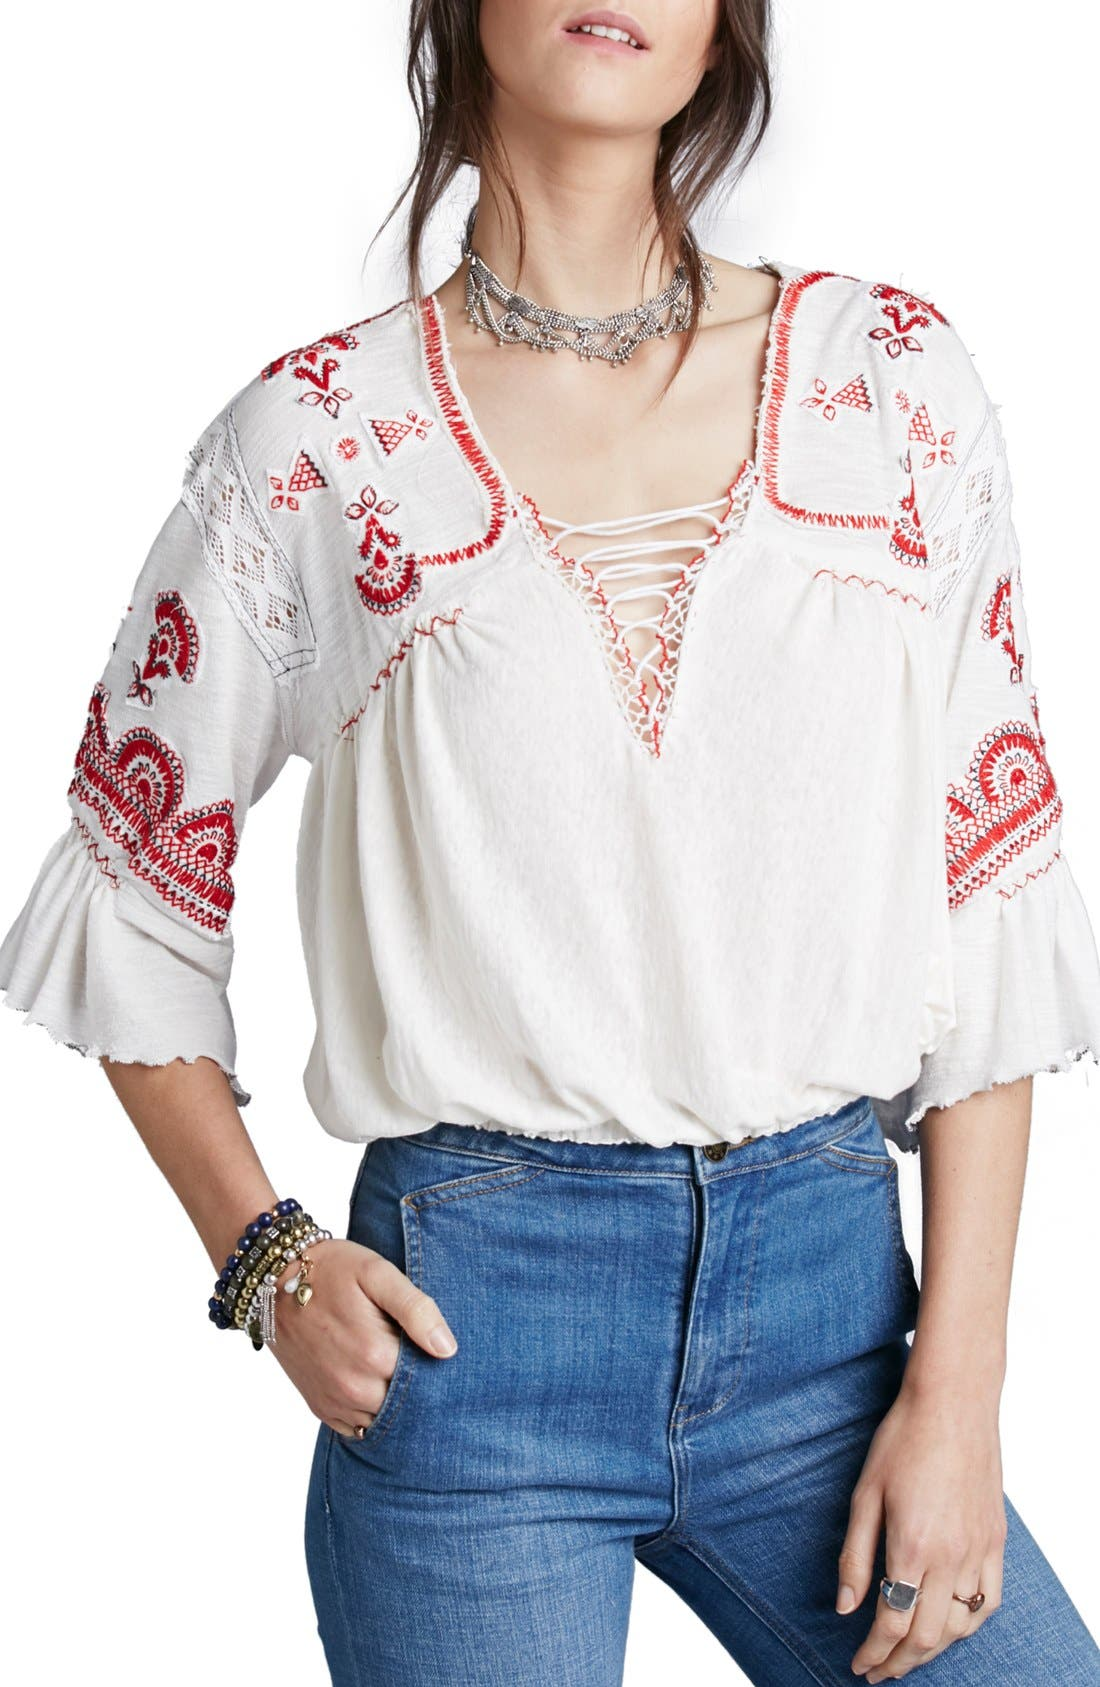 Main Image - Free People 'Chiquita' Embroidered Peasant Top